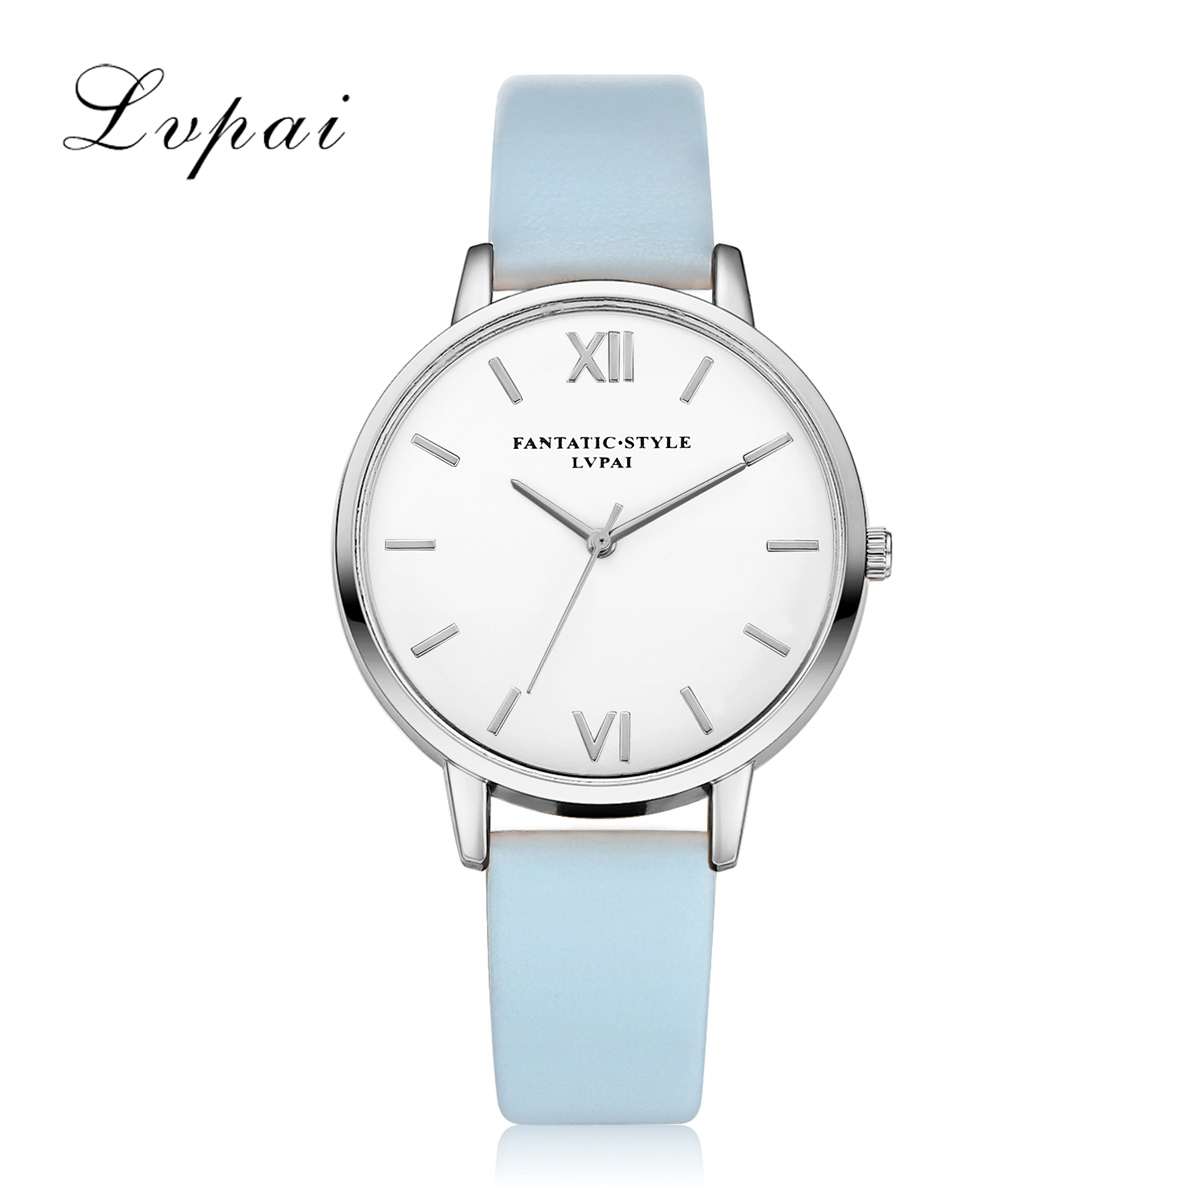 Lvpai Brand Luxury  Silver Hot Selling Casual PU Leather Strap Women Quartz Wristwatch Bracelet Ladies Business Watch Clock футболка детская с вашим текстом путешествие на дачу